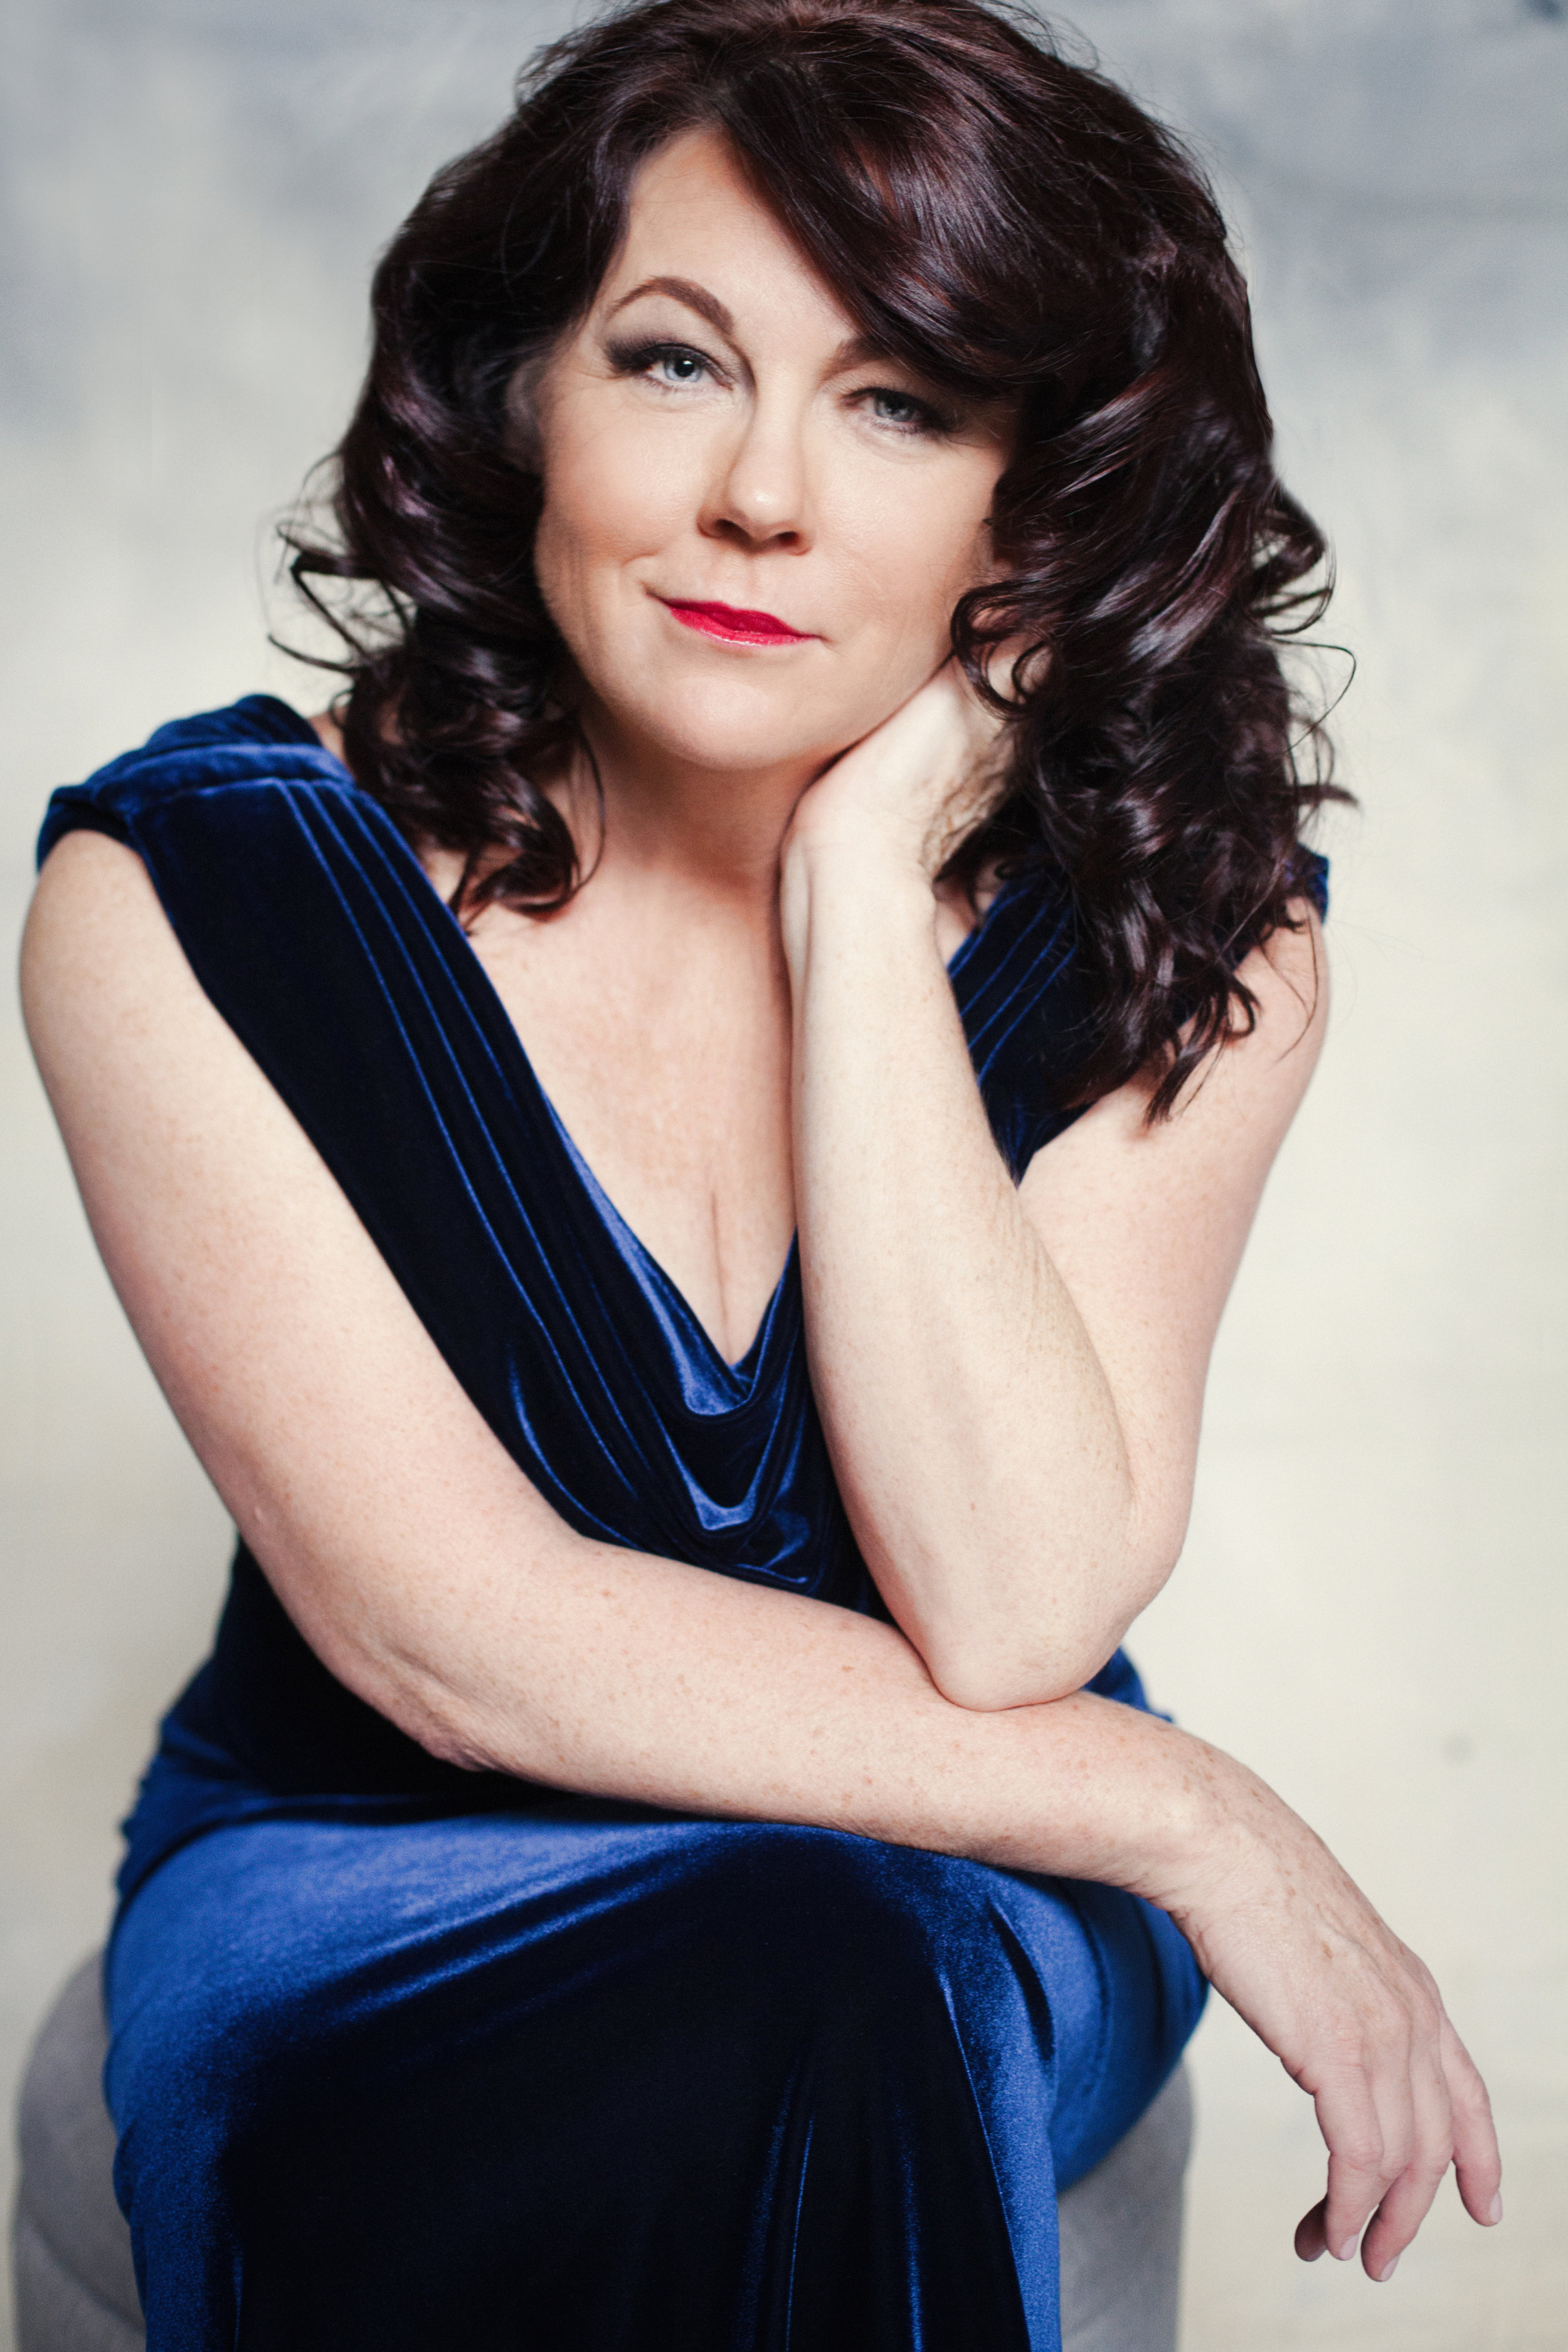 women over 50 - beautiful - feeling glamourous - makeover - photo shoot